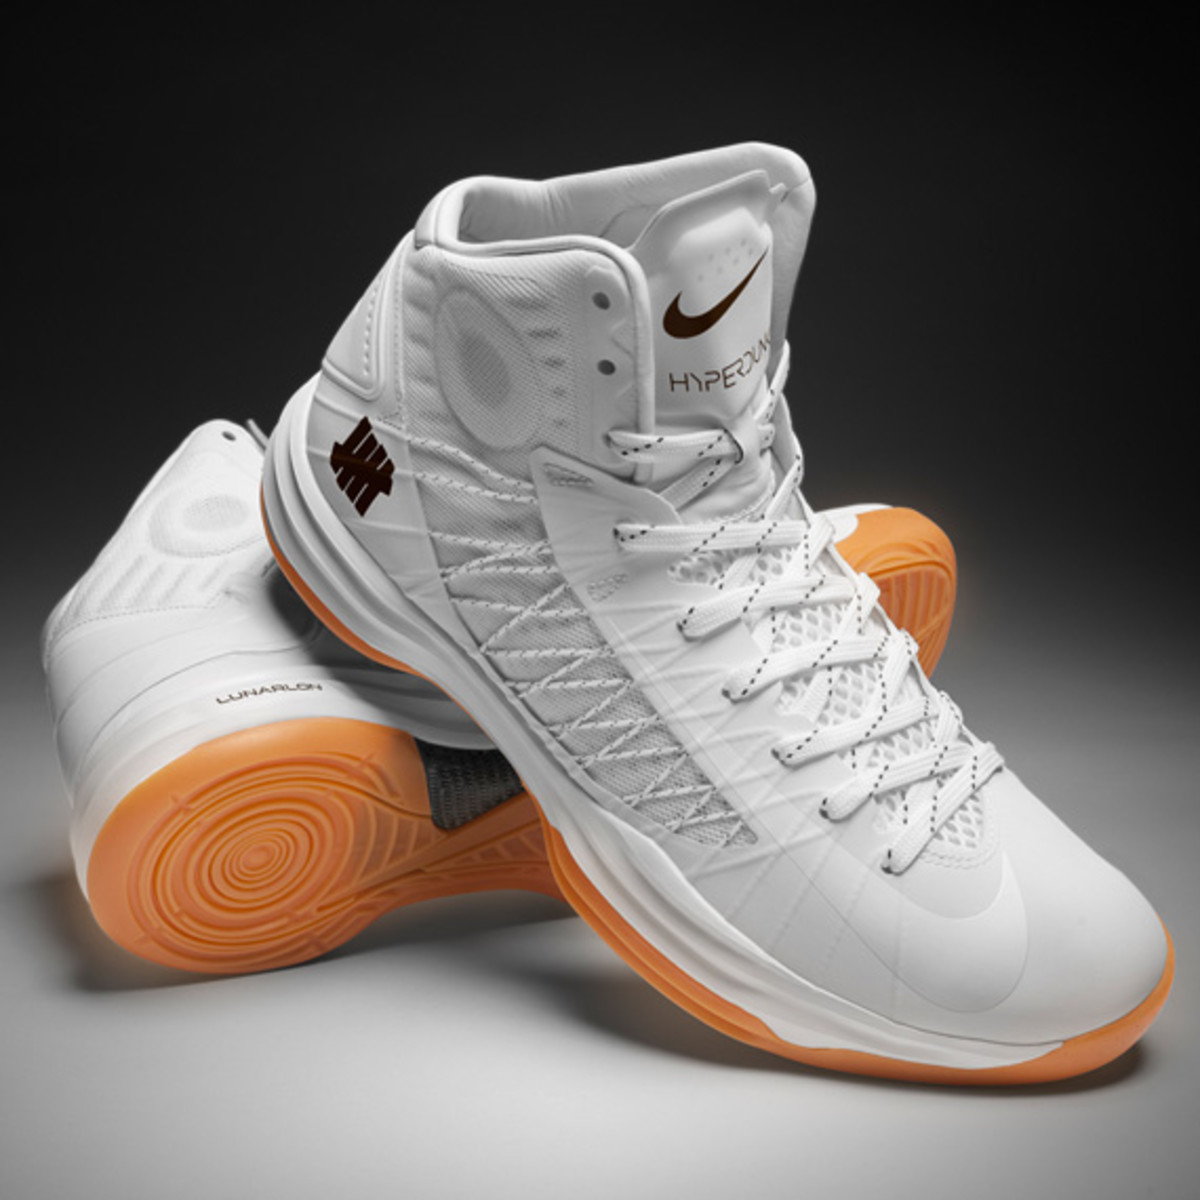 undefeated-nike-hyperdunk-2012-bring-back-pack-collection-officially-unveiled-05